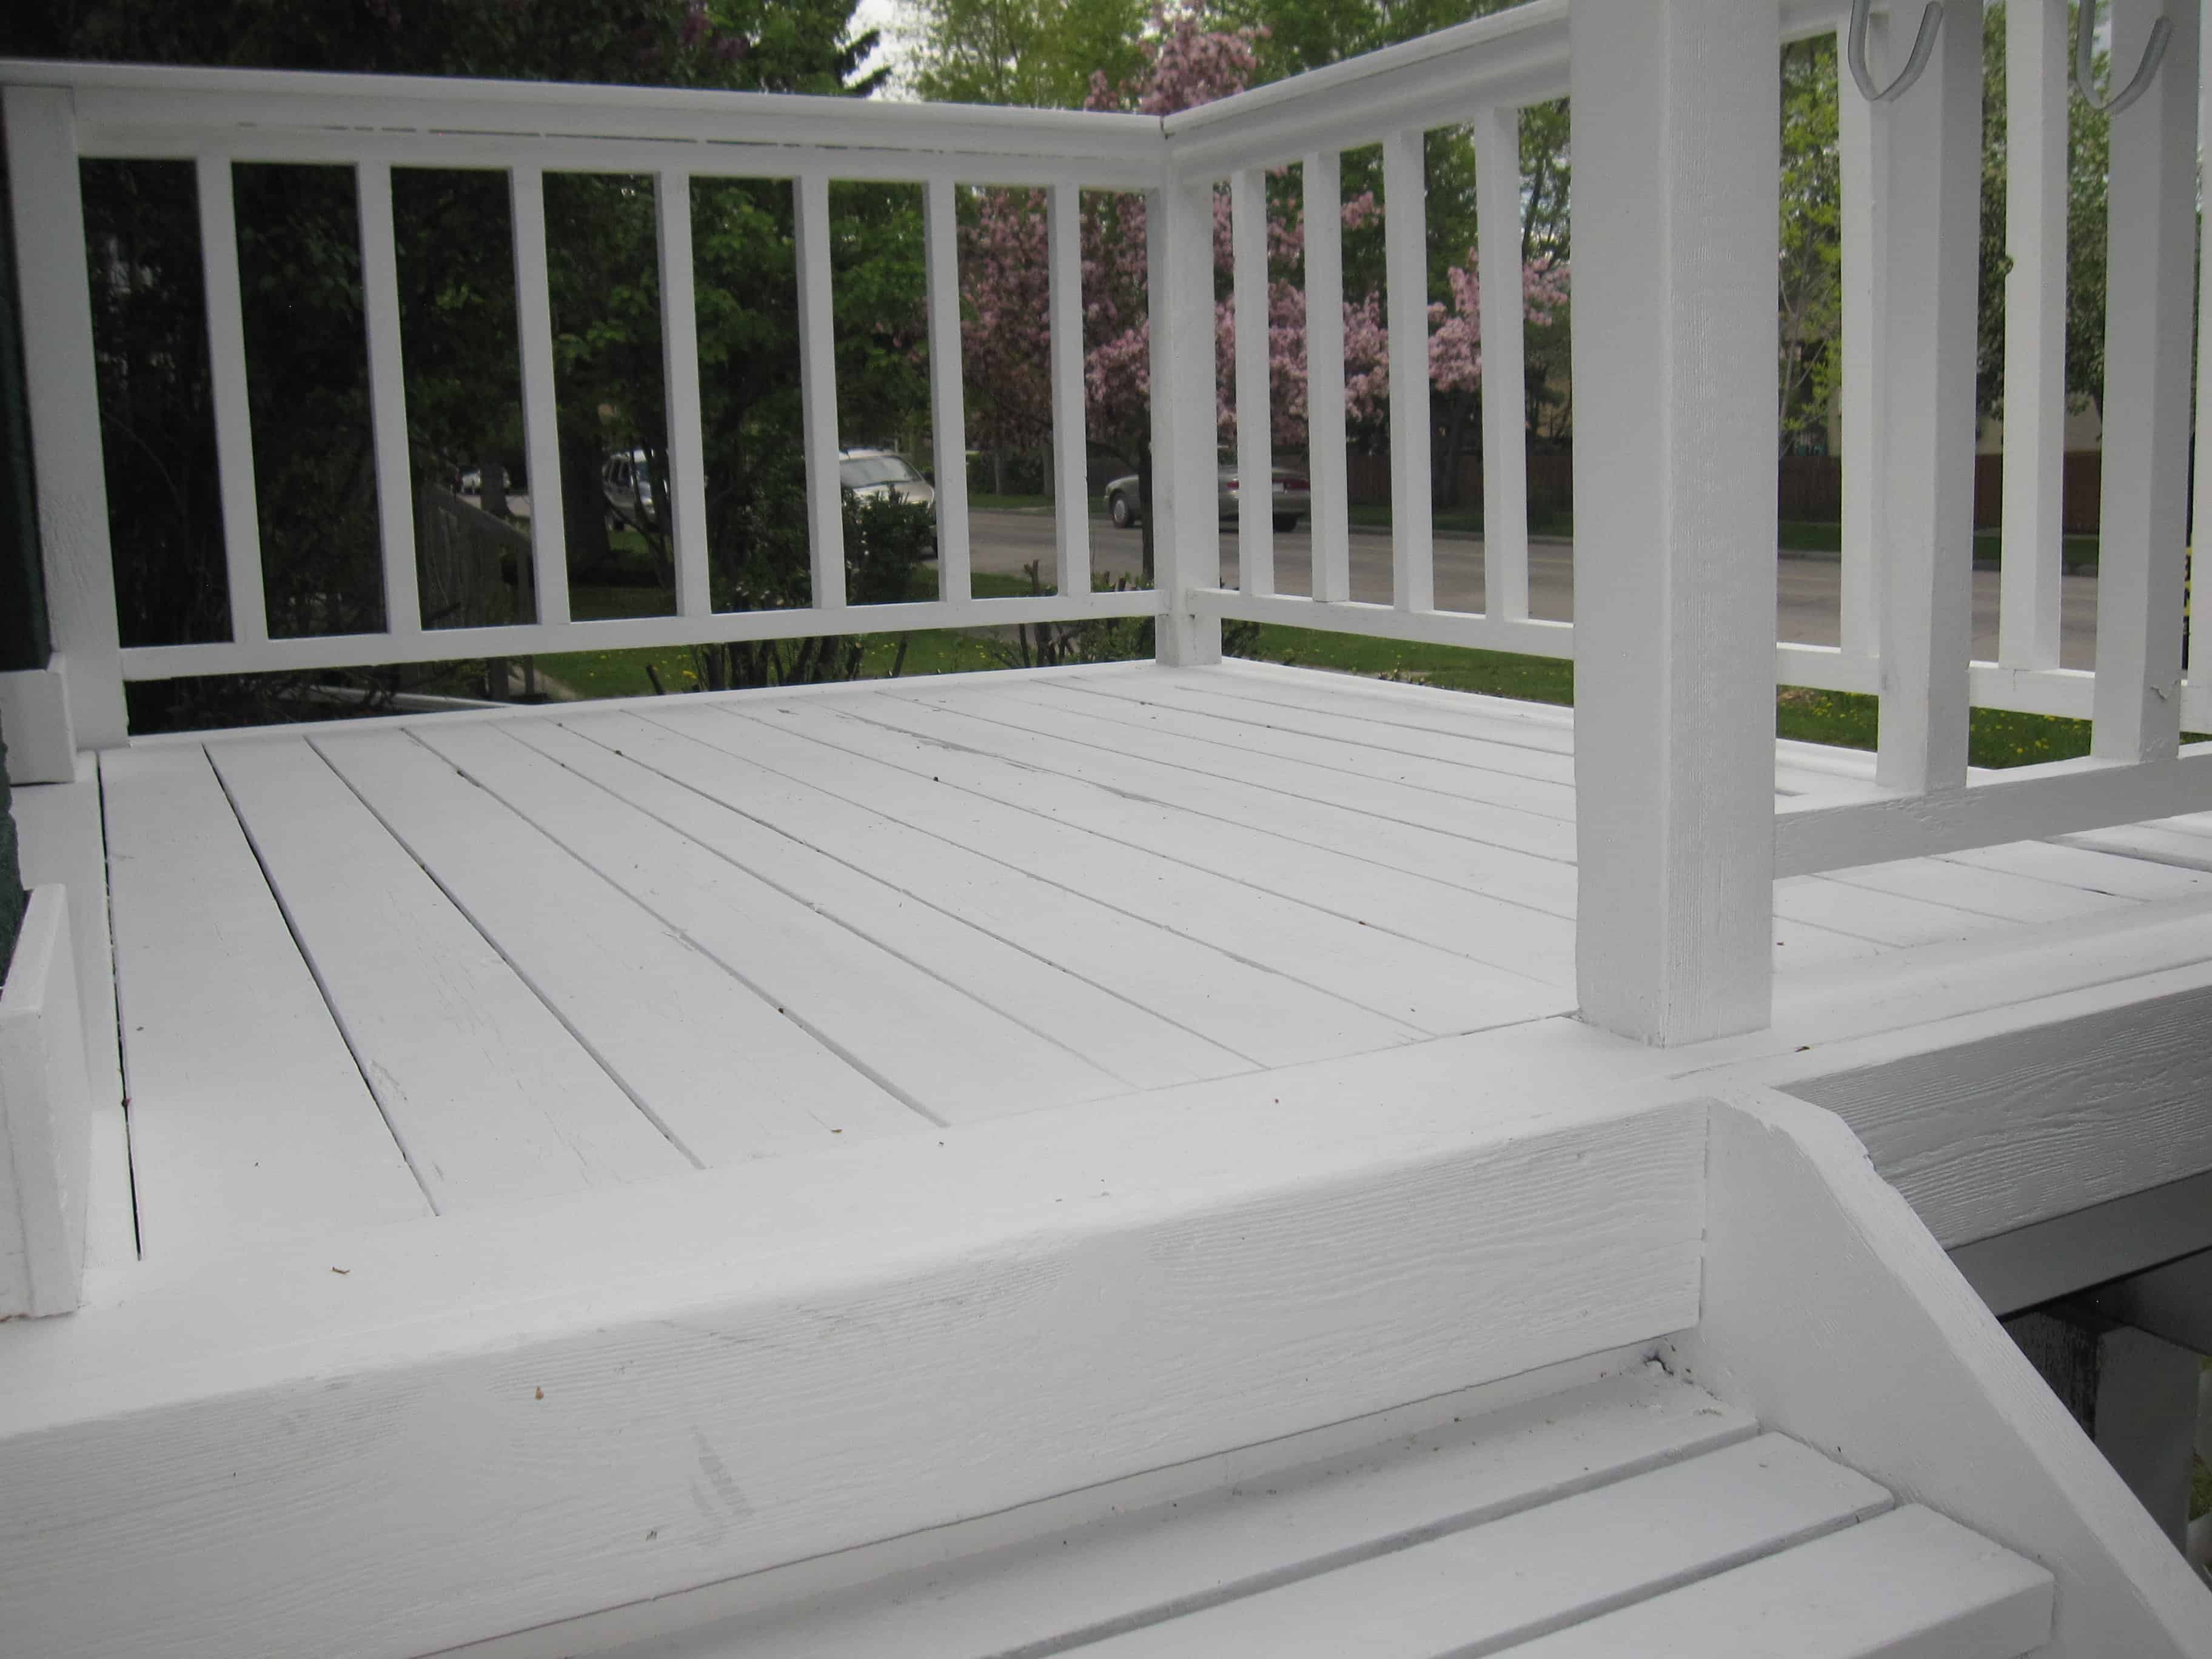 Picture Showing The Brilliant White Deck After Lying Flood Stain